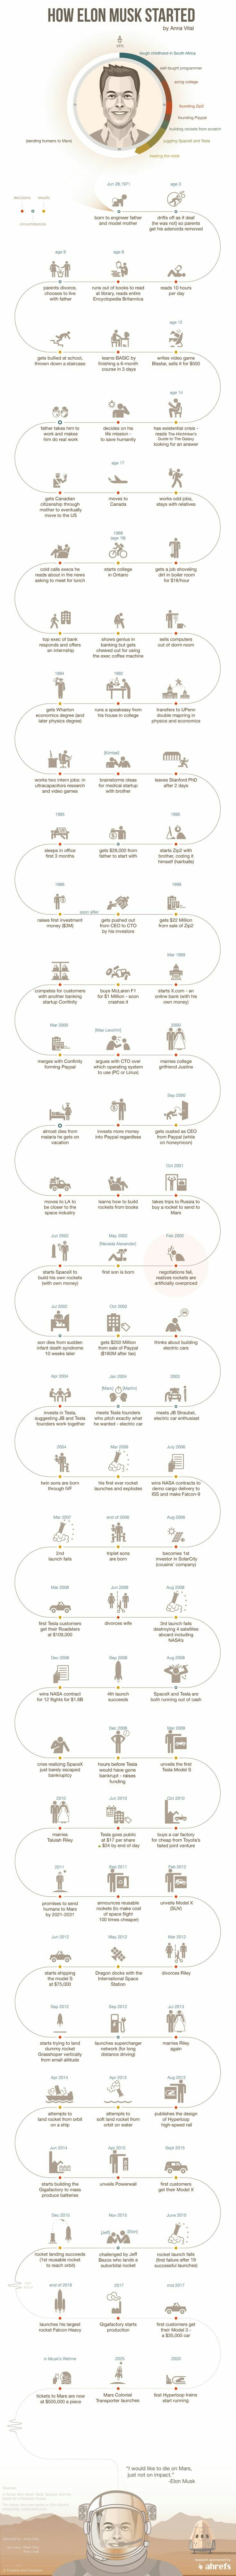 How #Elon_Musk Started? #Infographic